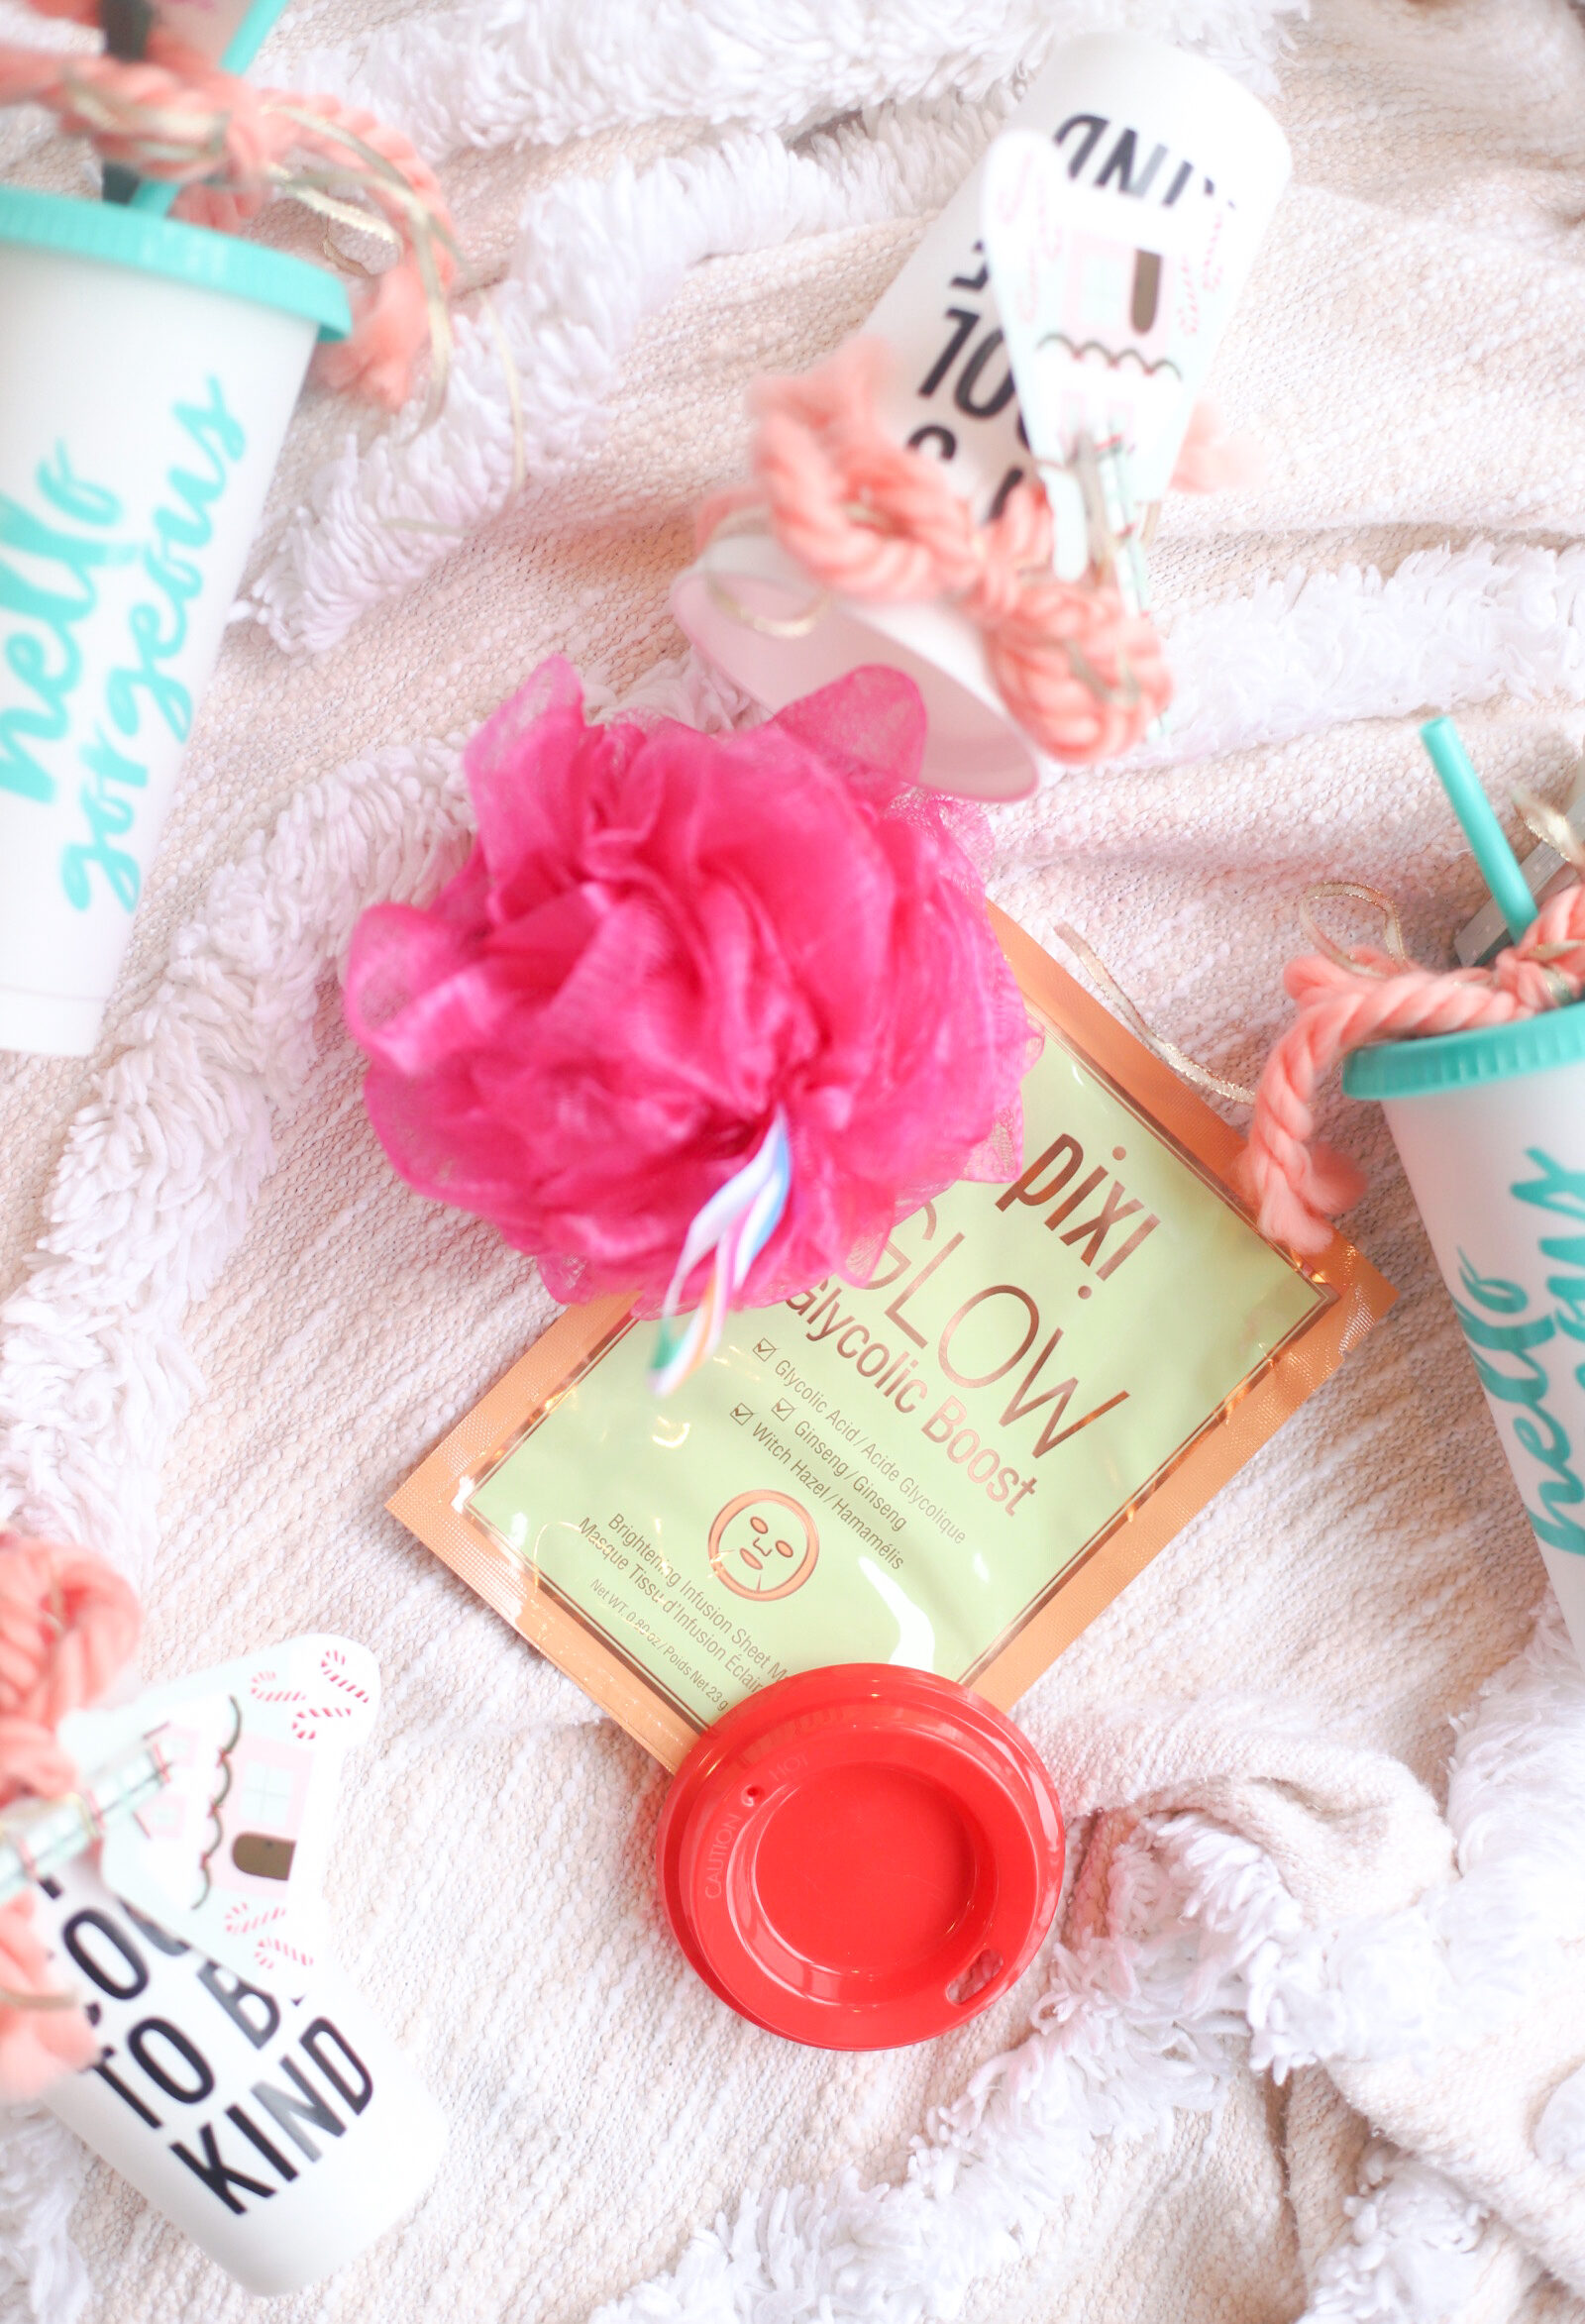 Make an extra special and thoughtful homemade gift for your child's favorite teacher, instructor, coach, etc., and all for under $5! This DIY pampering in a cup gift will be an instant hit.   glitterinc.com   @glitterinc